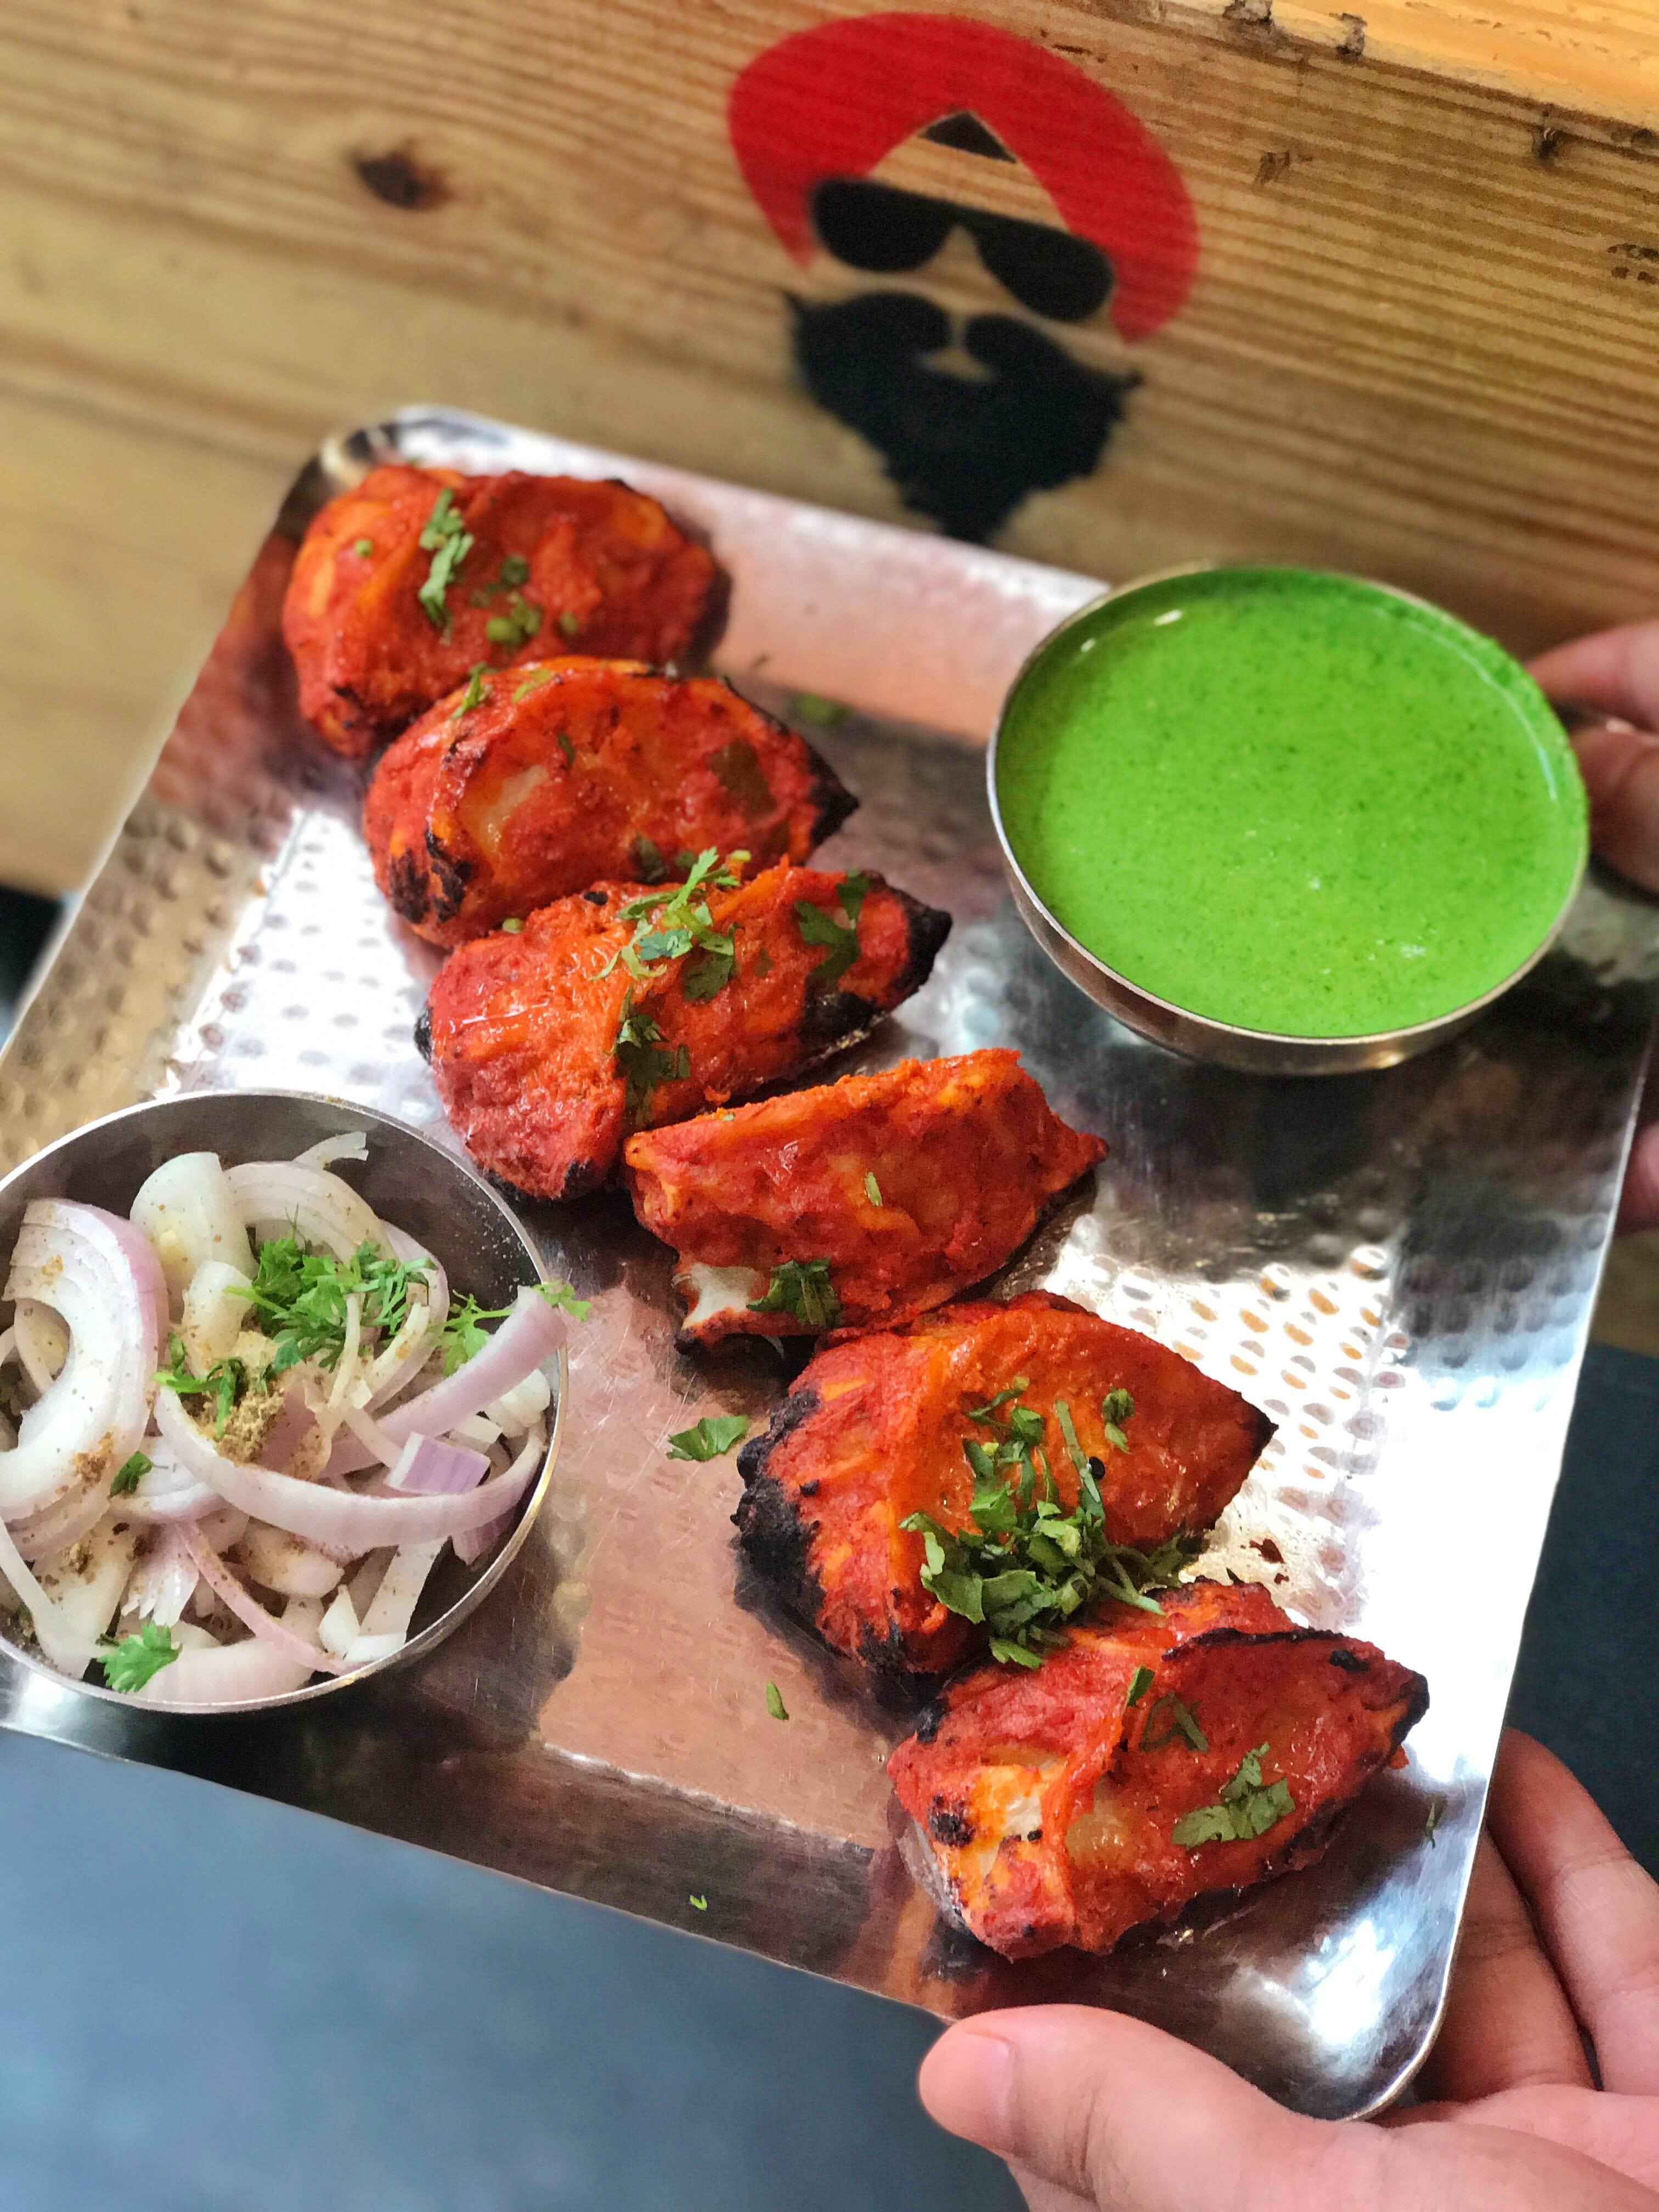 Dish,Food,Cuisine,Ingredient,Tandoori chicken,Fried food,Chicken tikka,Chicken 65,Chicken meat,Recipe